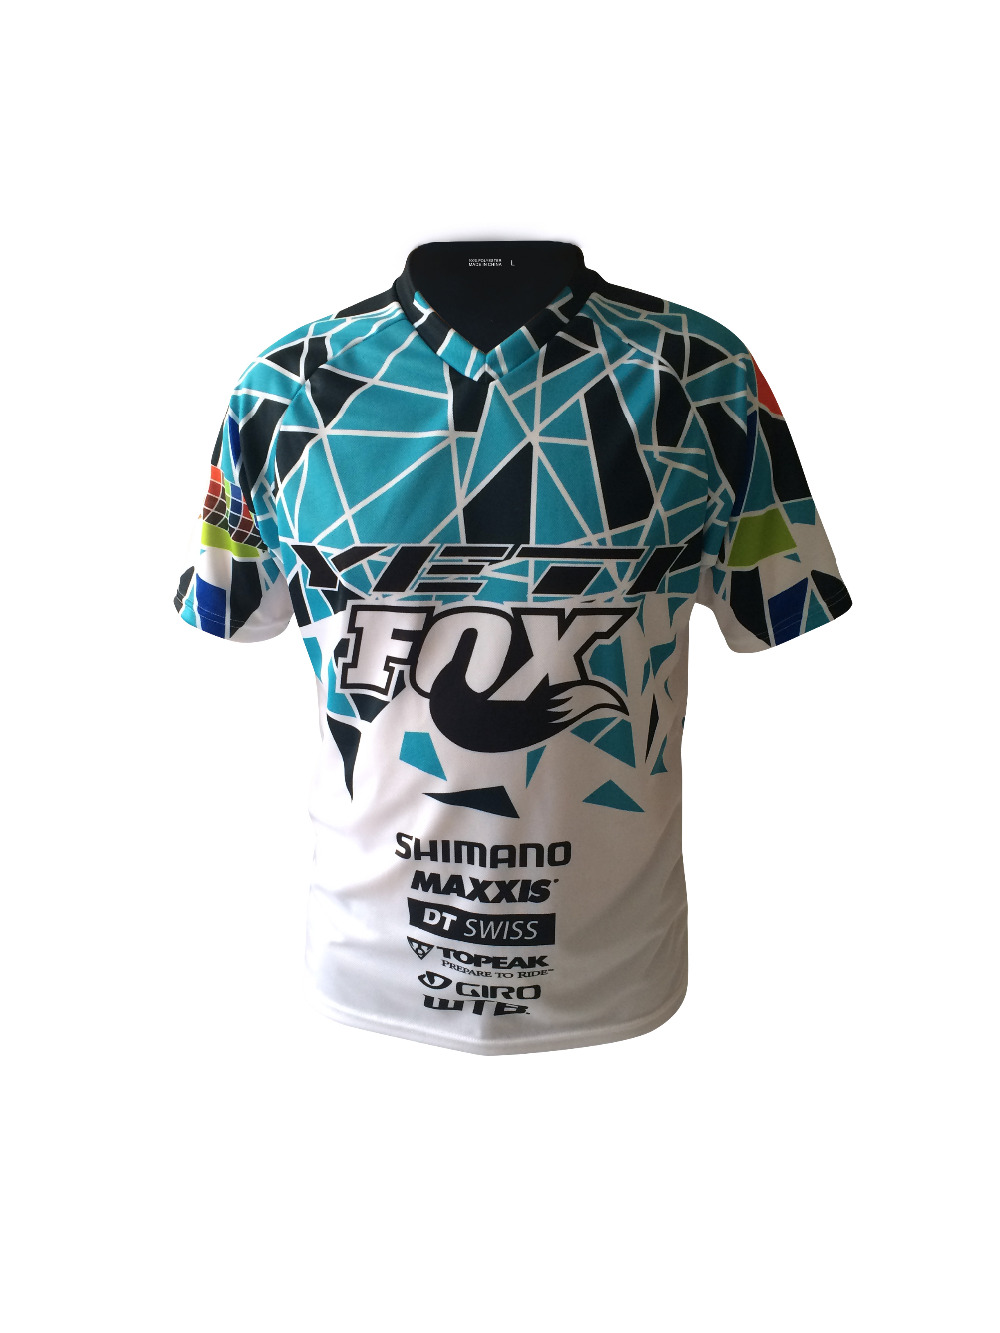 Yeti Mountain Bike Shirts 8e562bc8c